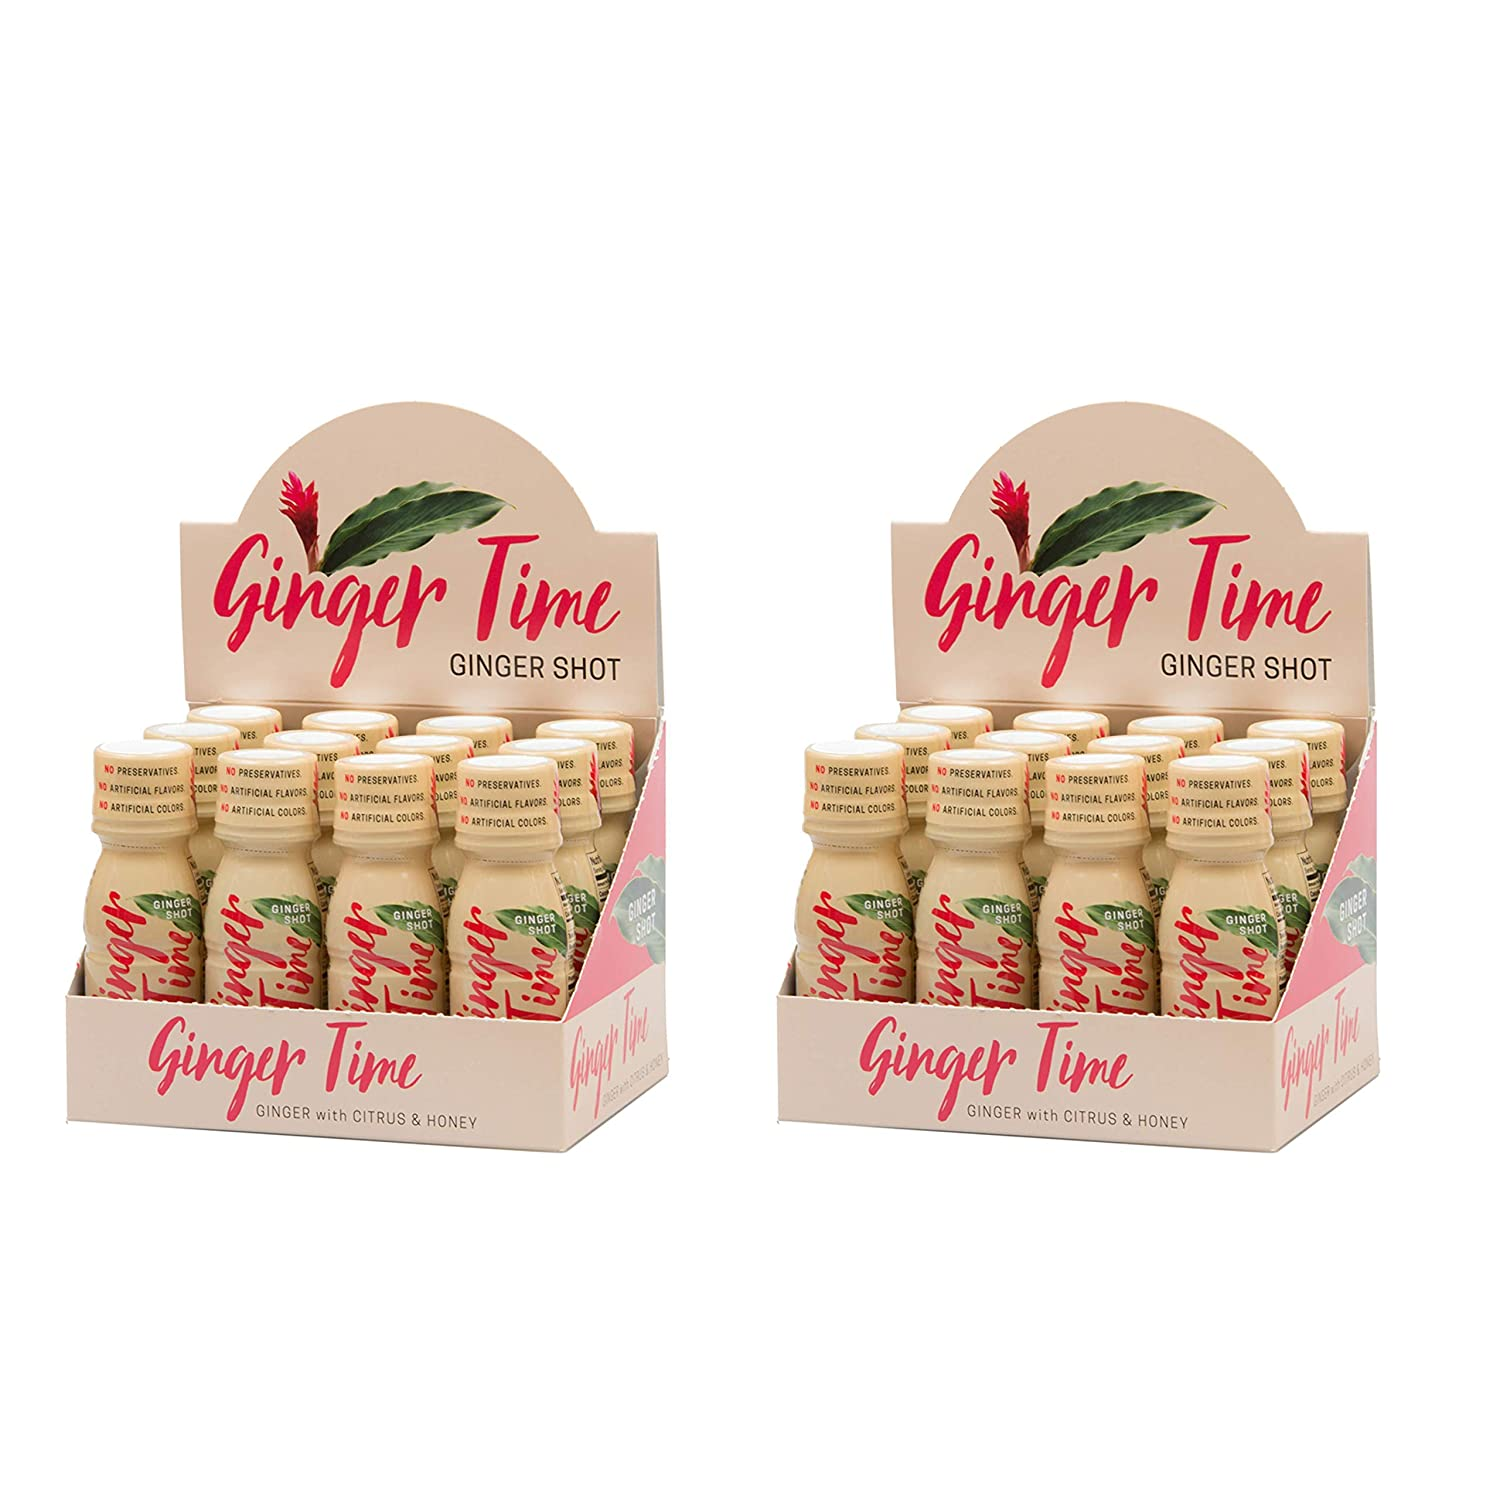 Ginger Time Ginger Shots – Ginger with Citrus Honey Non-GMO No Preservatives or Artificial Flavors Colors Sweeteners B Vitamins No Need for Refrigeration 24 Pack